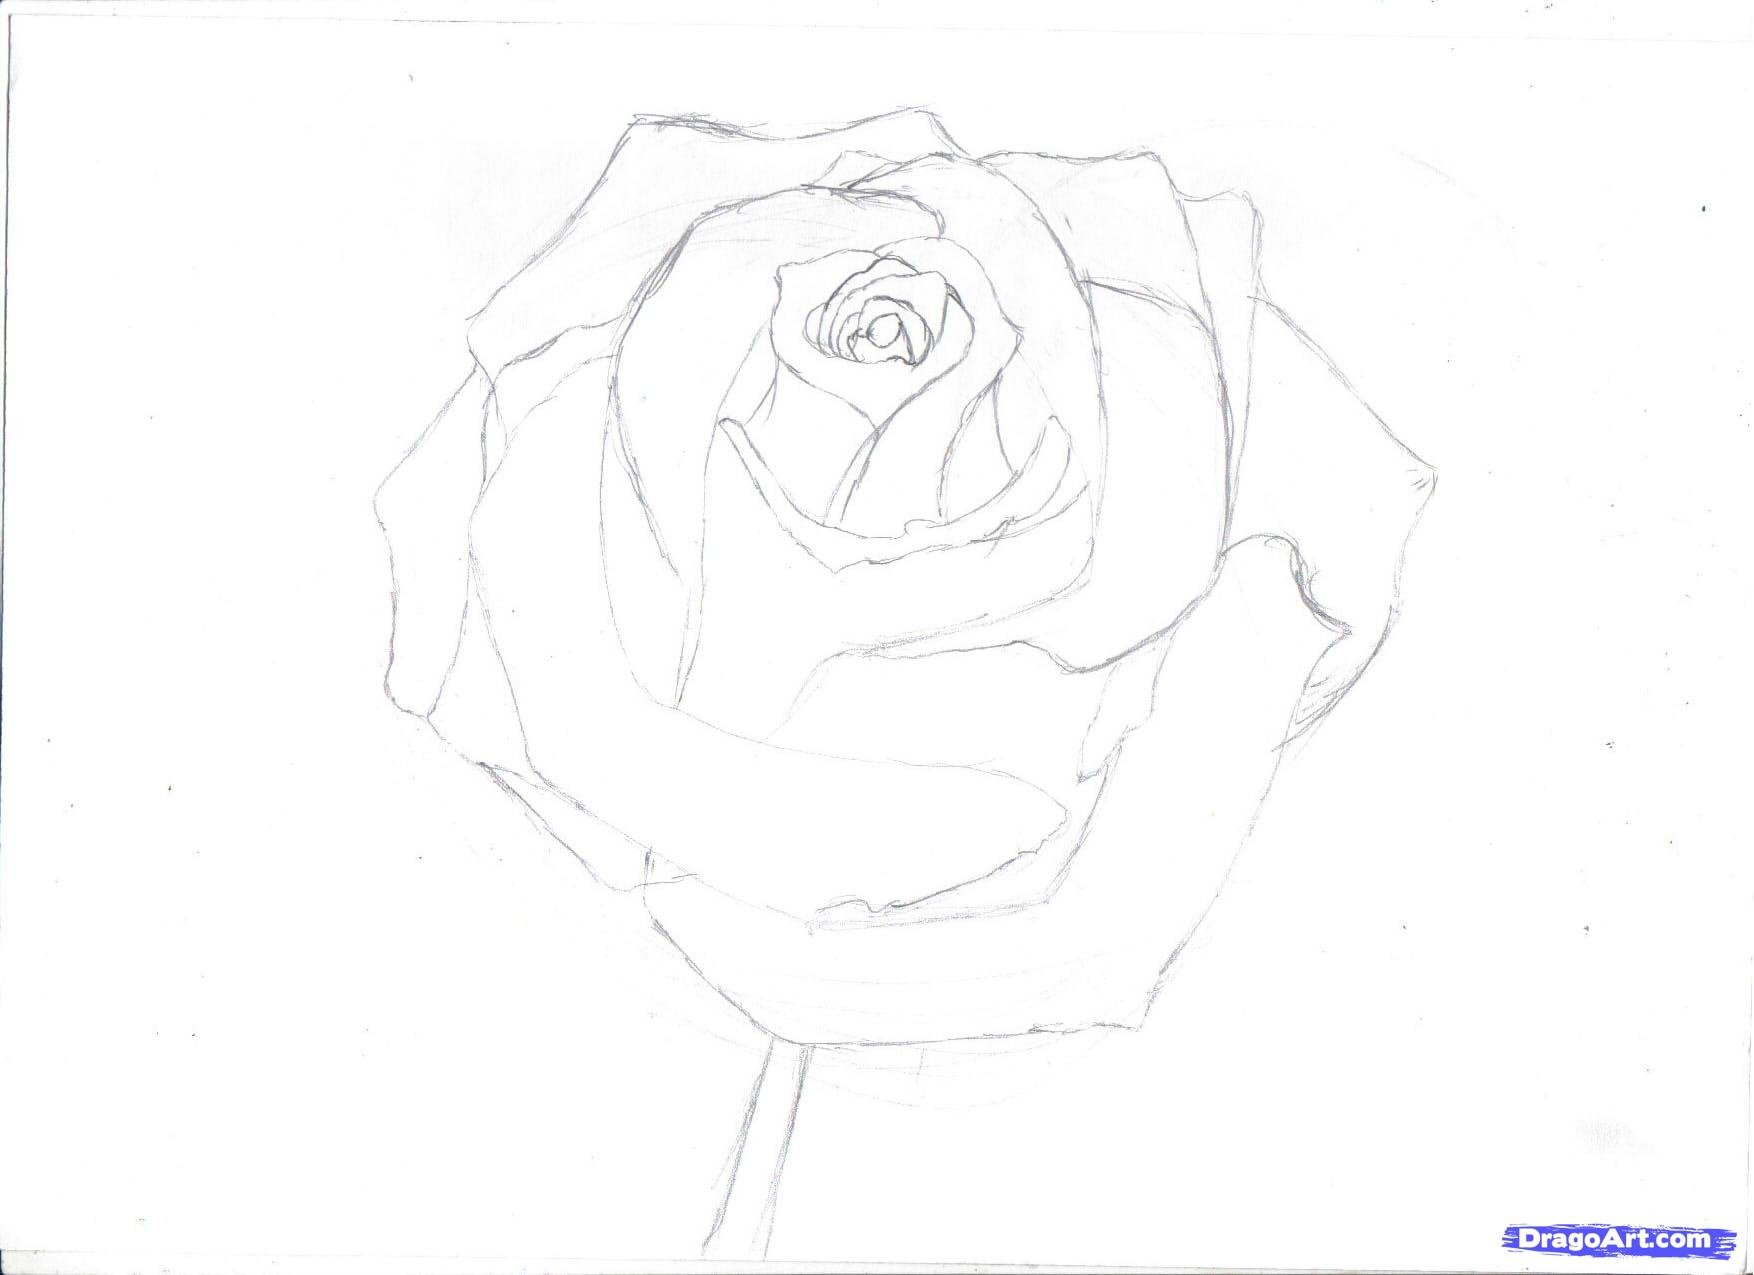 Drawn rose pencil outline Rose by to 2 a